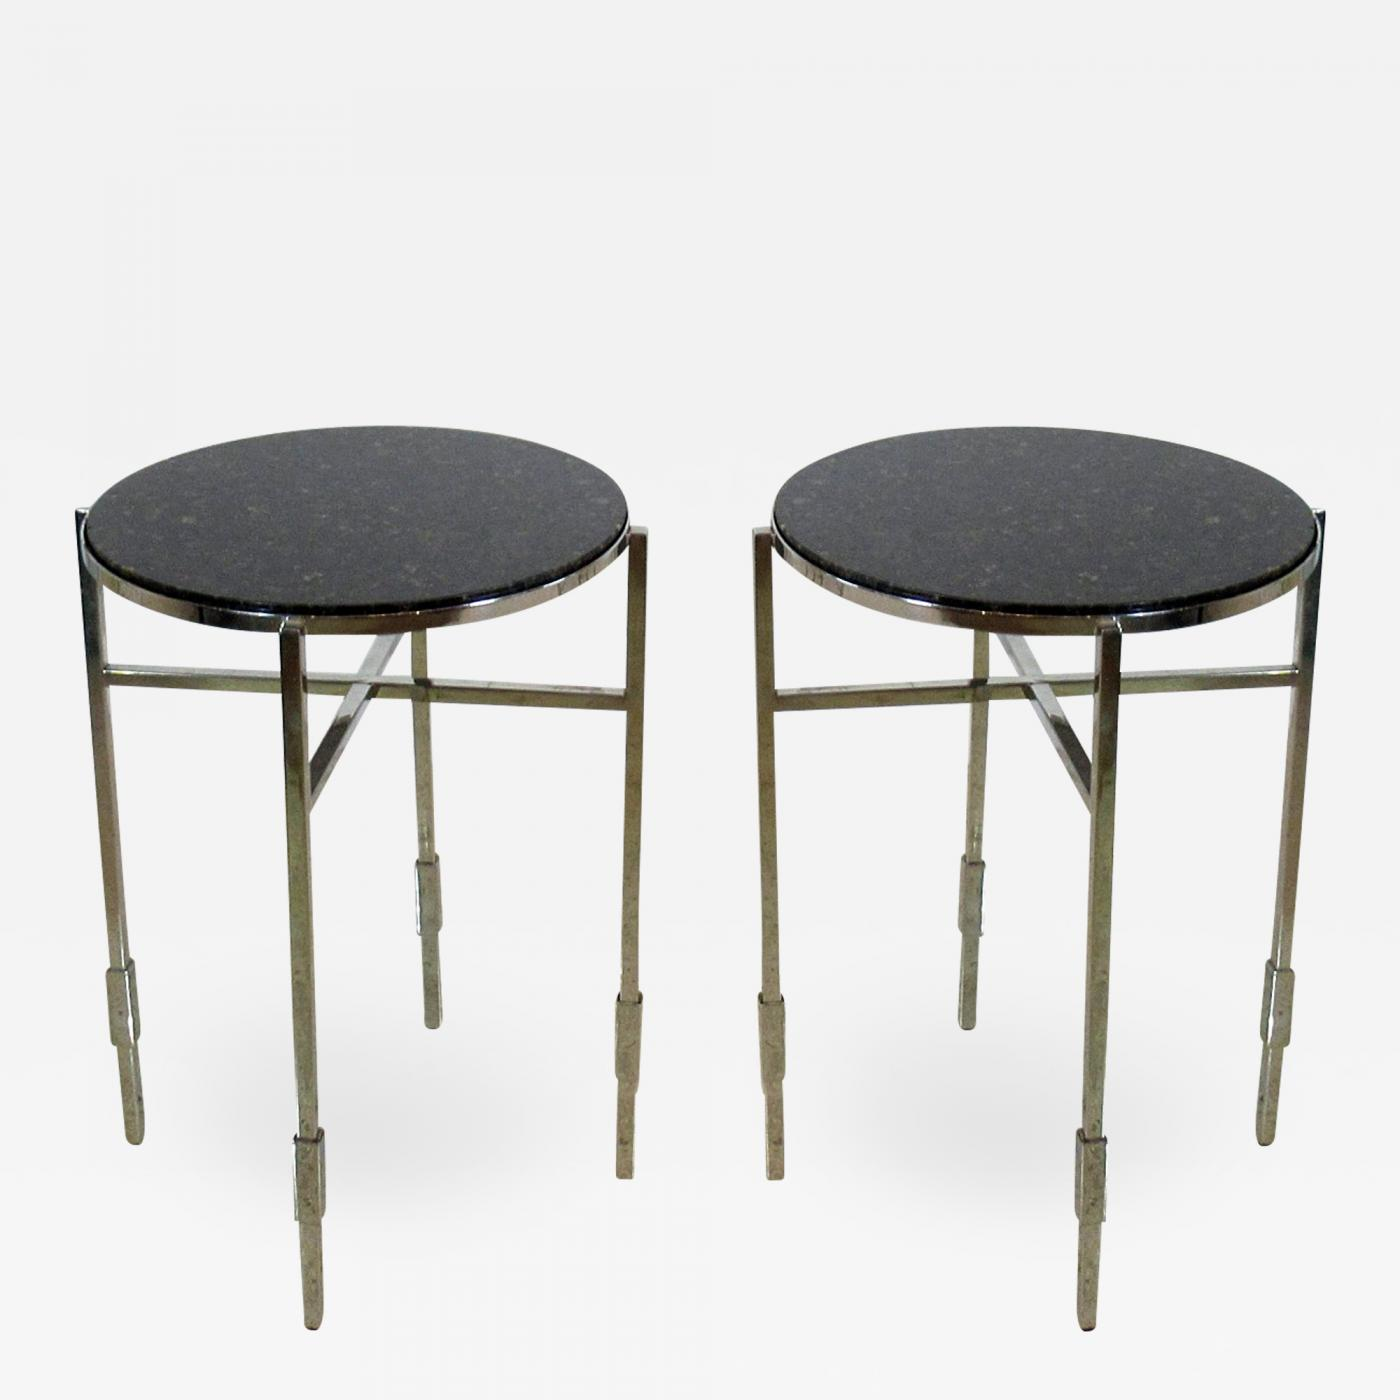 Prime Michael Graves American Modern Polished Chrome Granite Occasional Tables Michael Graves Download Free Architecture Designs Itiscsunscenecom